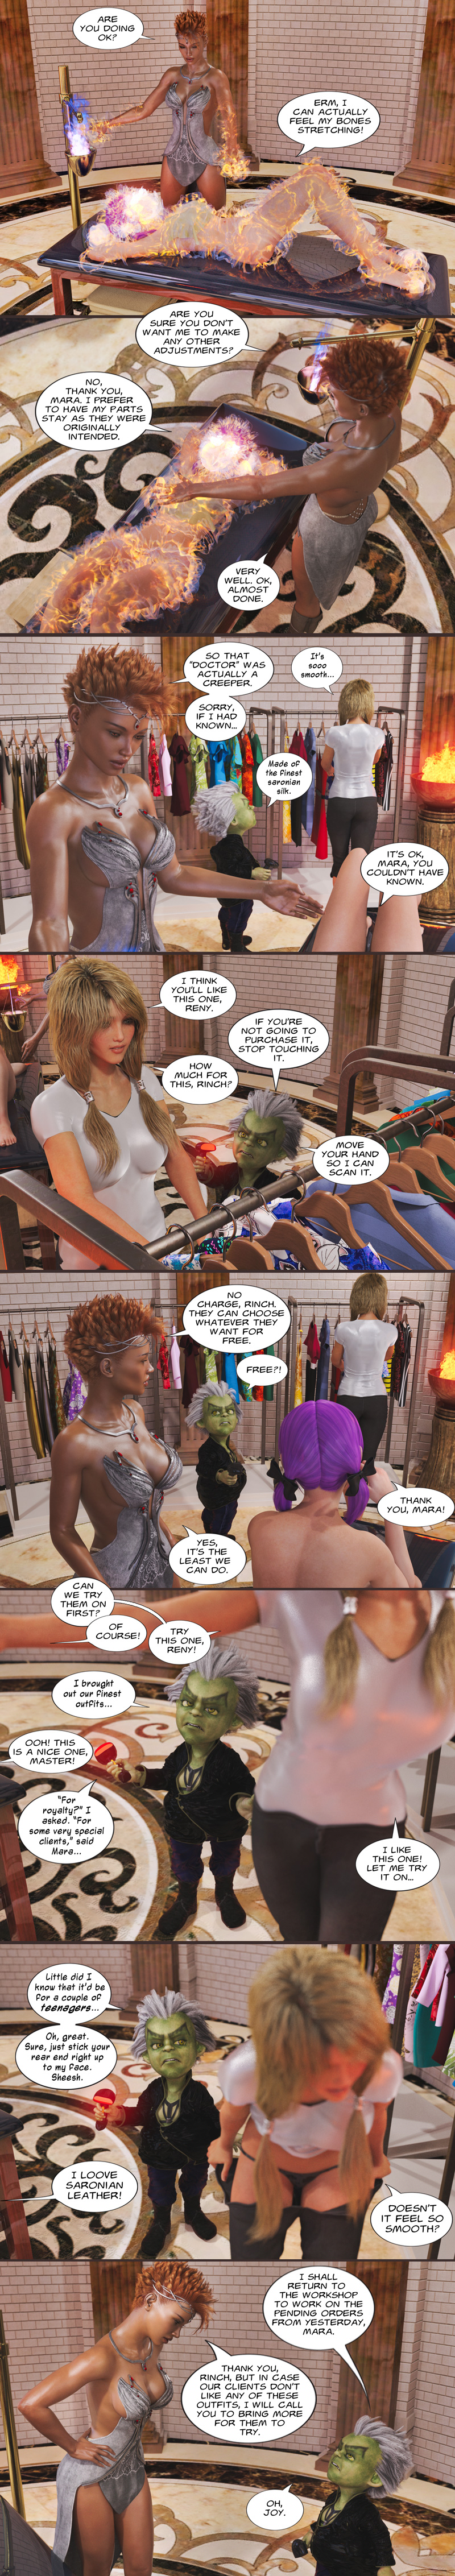 Chapter 19, page 28 – make me 18